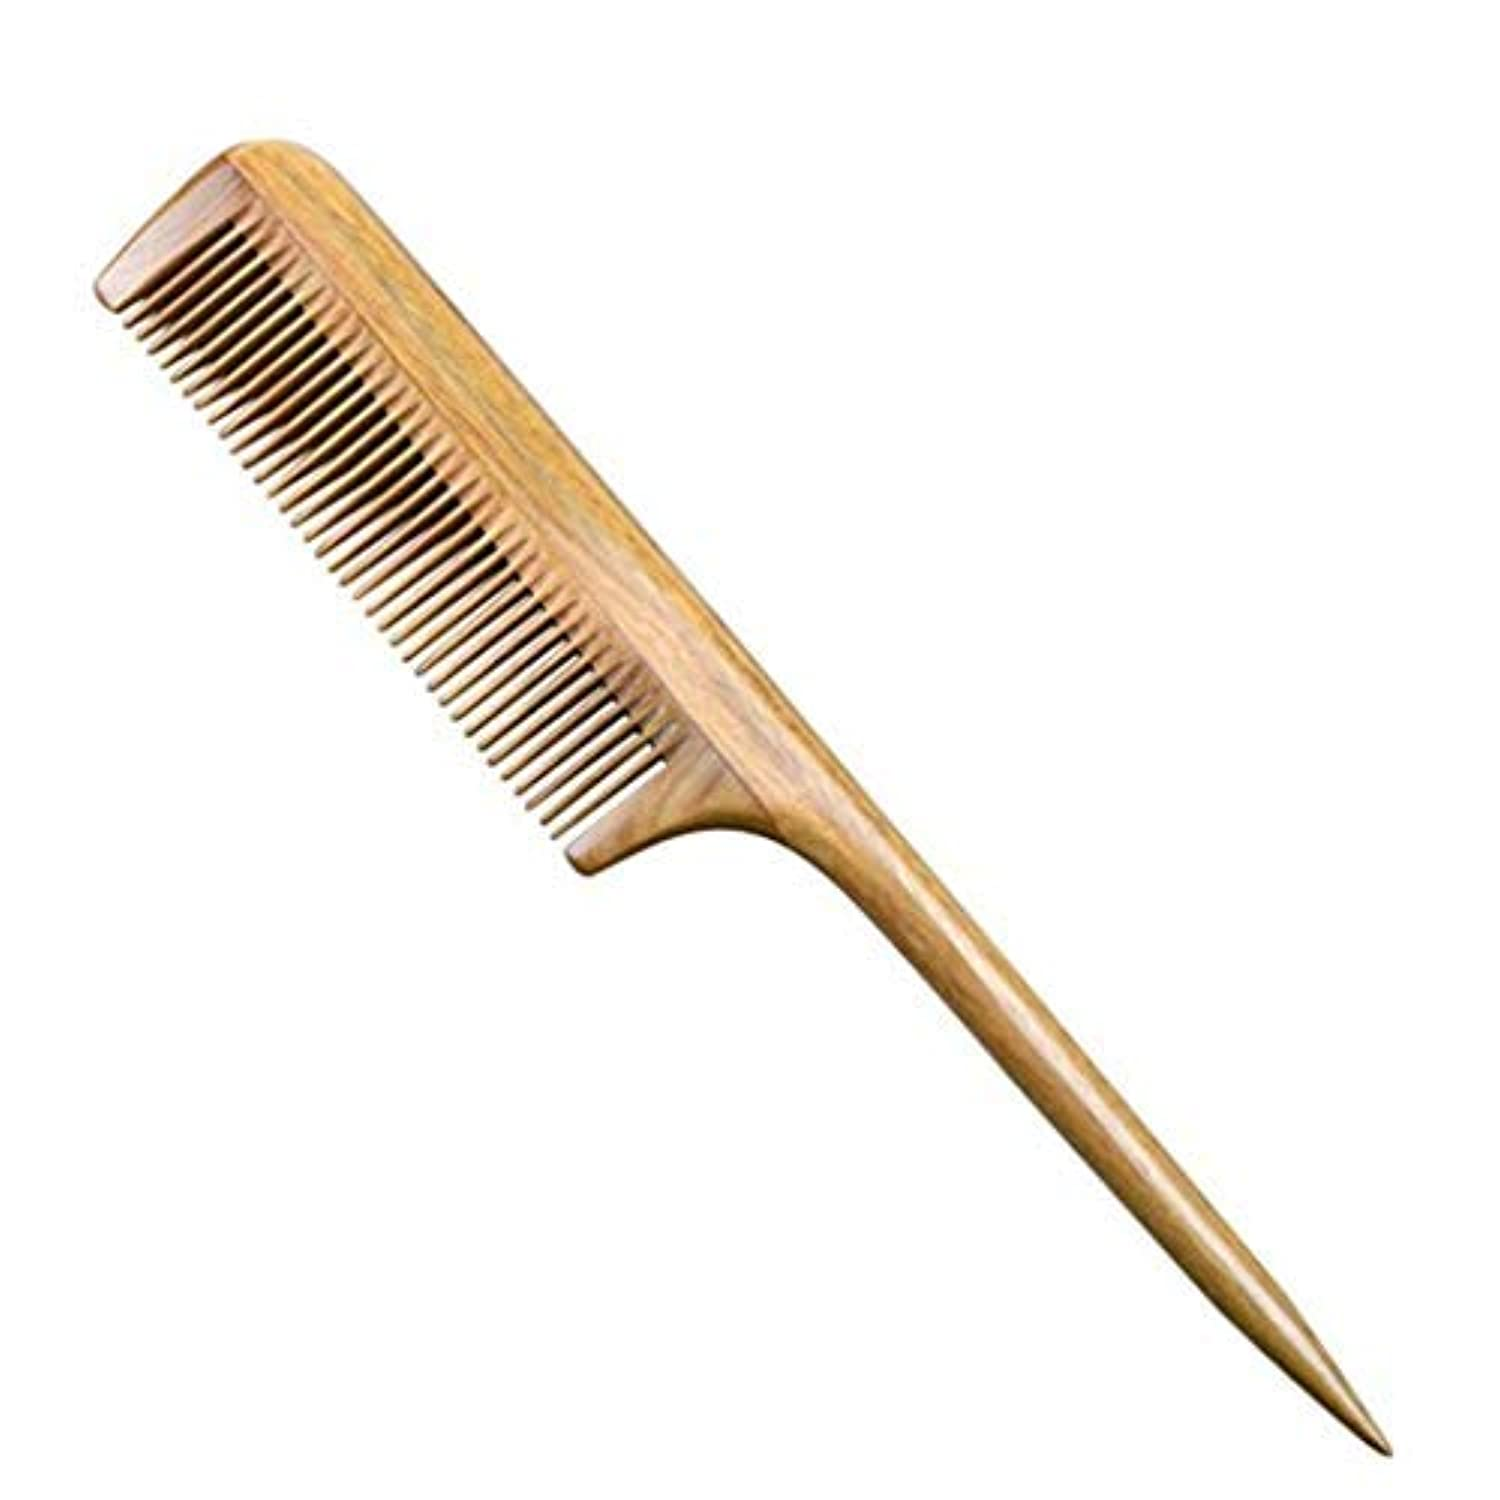 ブッシュバズゲートウェイRat Tail Hair Comb - Fine Tooth Natural Green Sandalwood Combs with Teasing Tail Handle - No Static Wooden Comb...